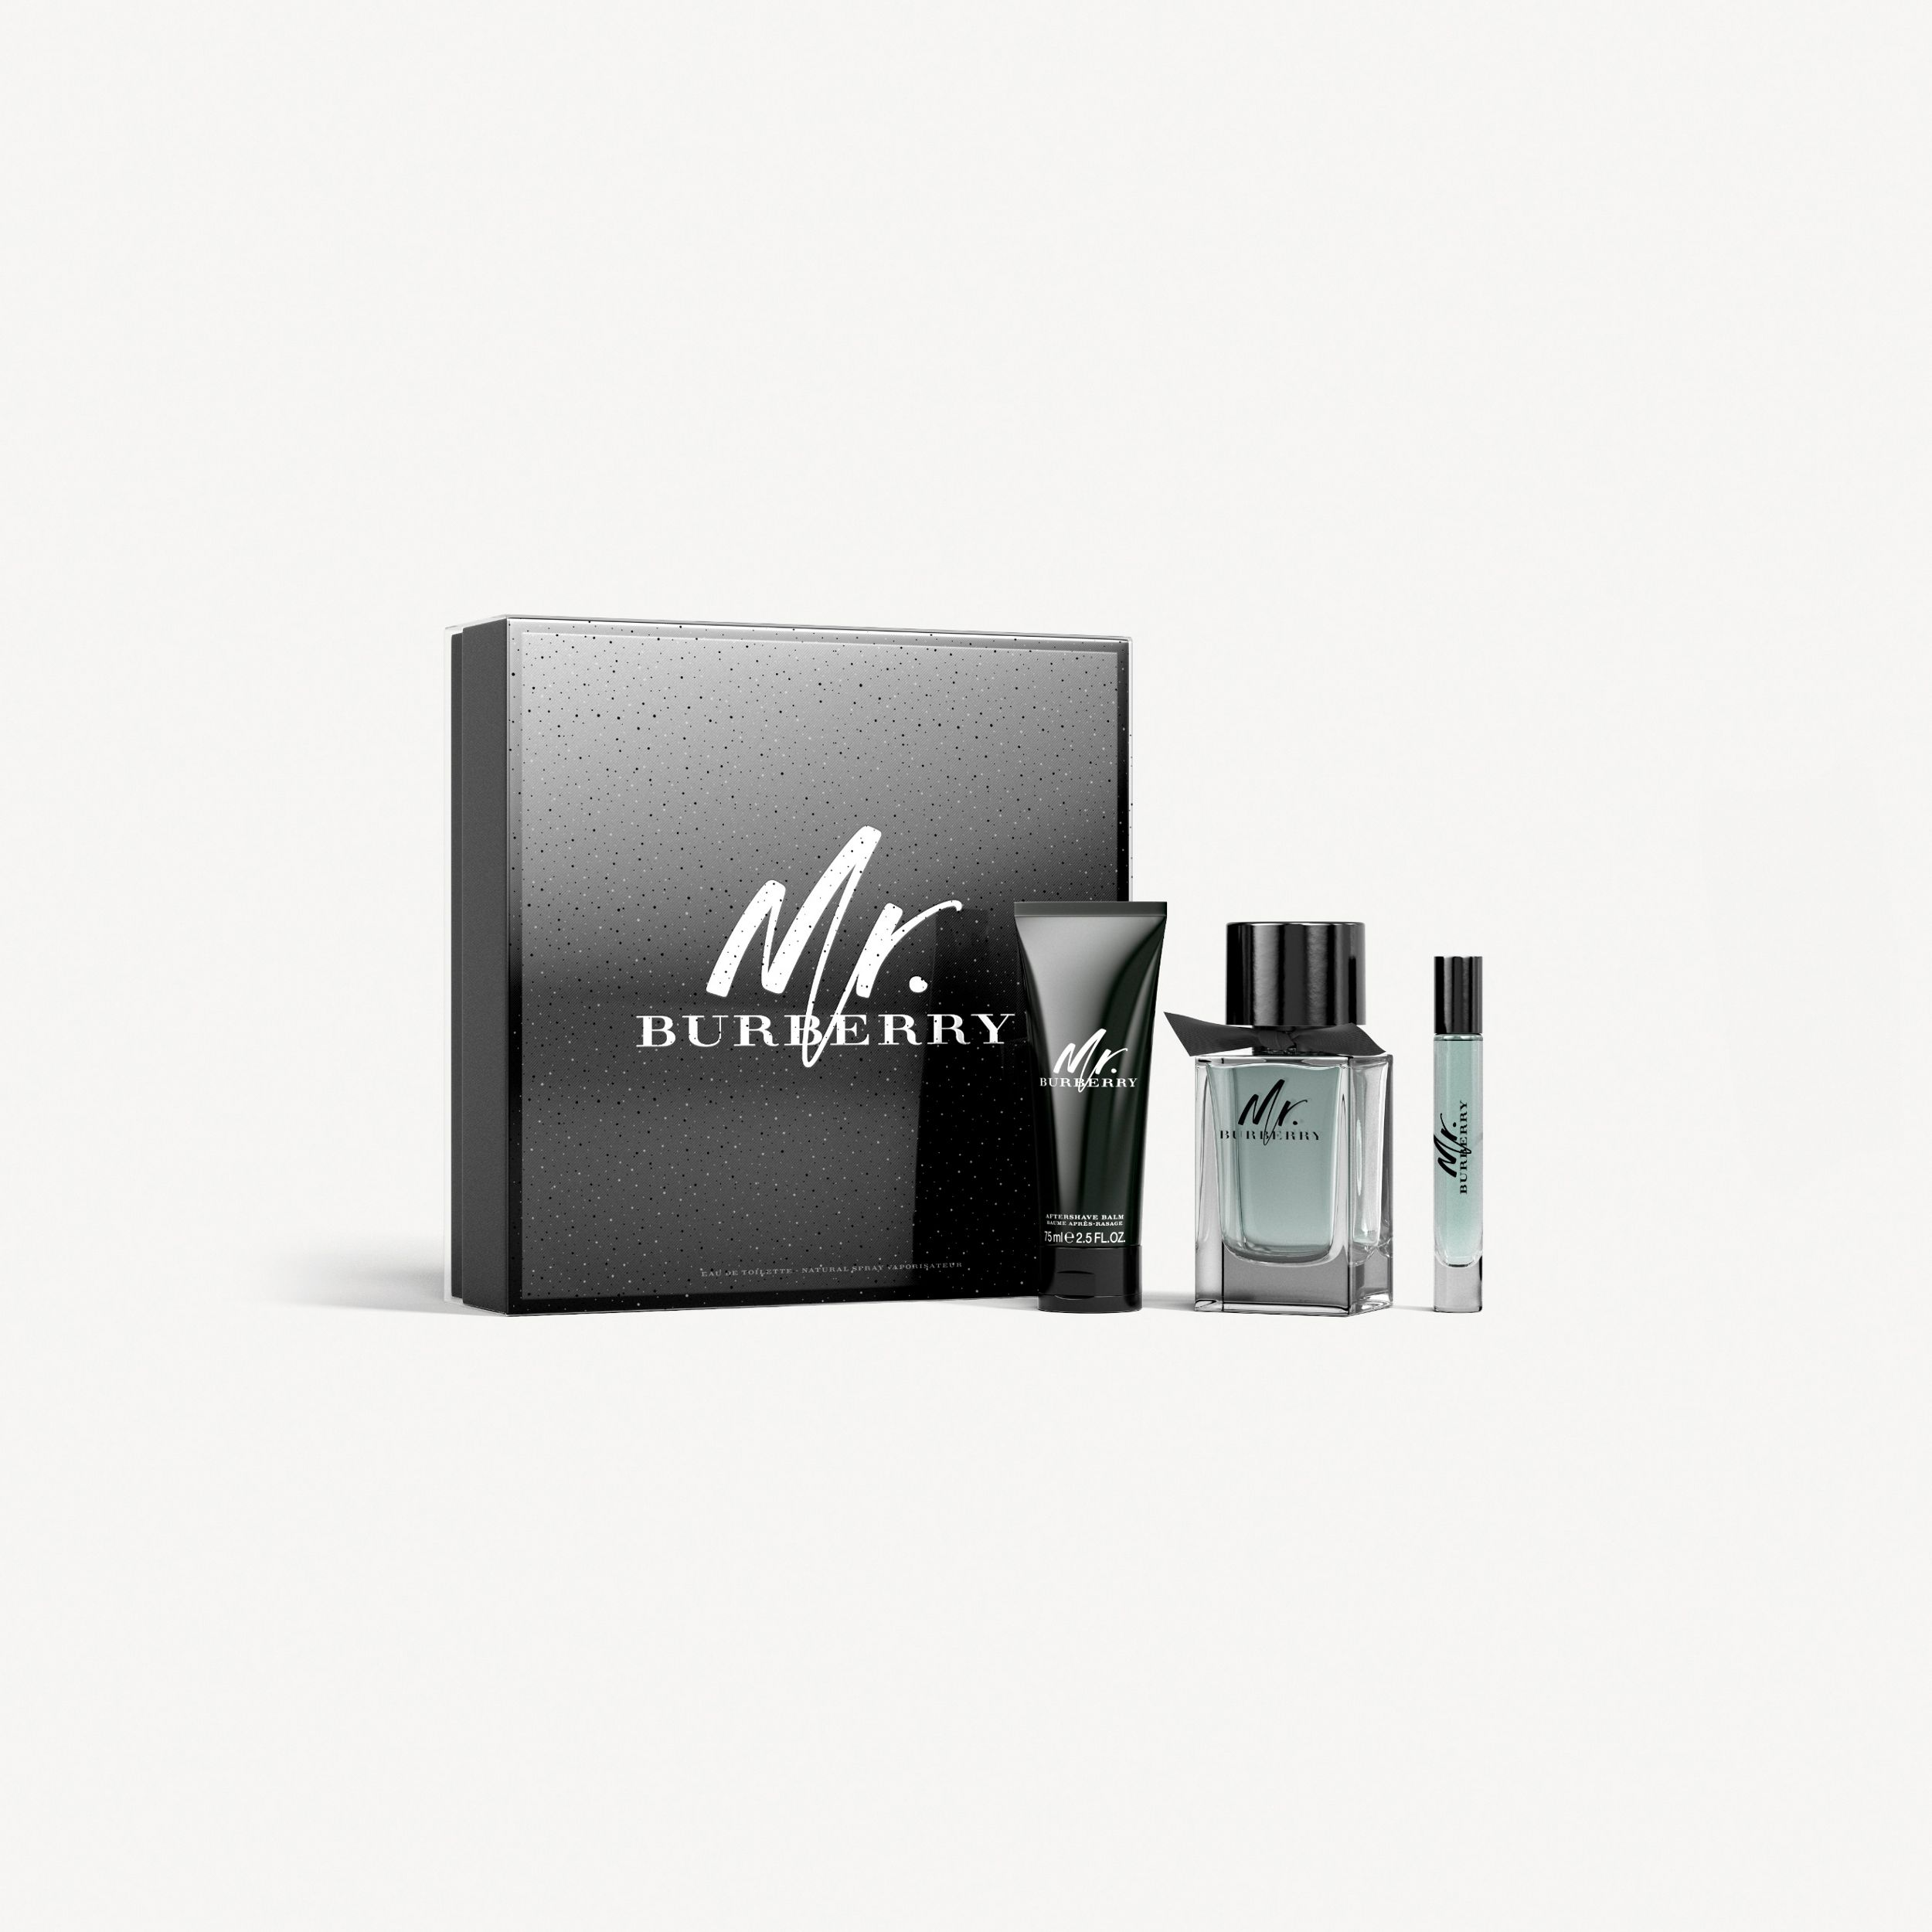 Mr. Burberry Eau de Toilette Luxury Set in No Colour - Men | Burberry - 1